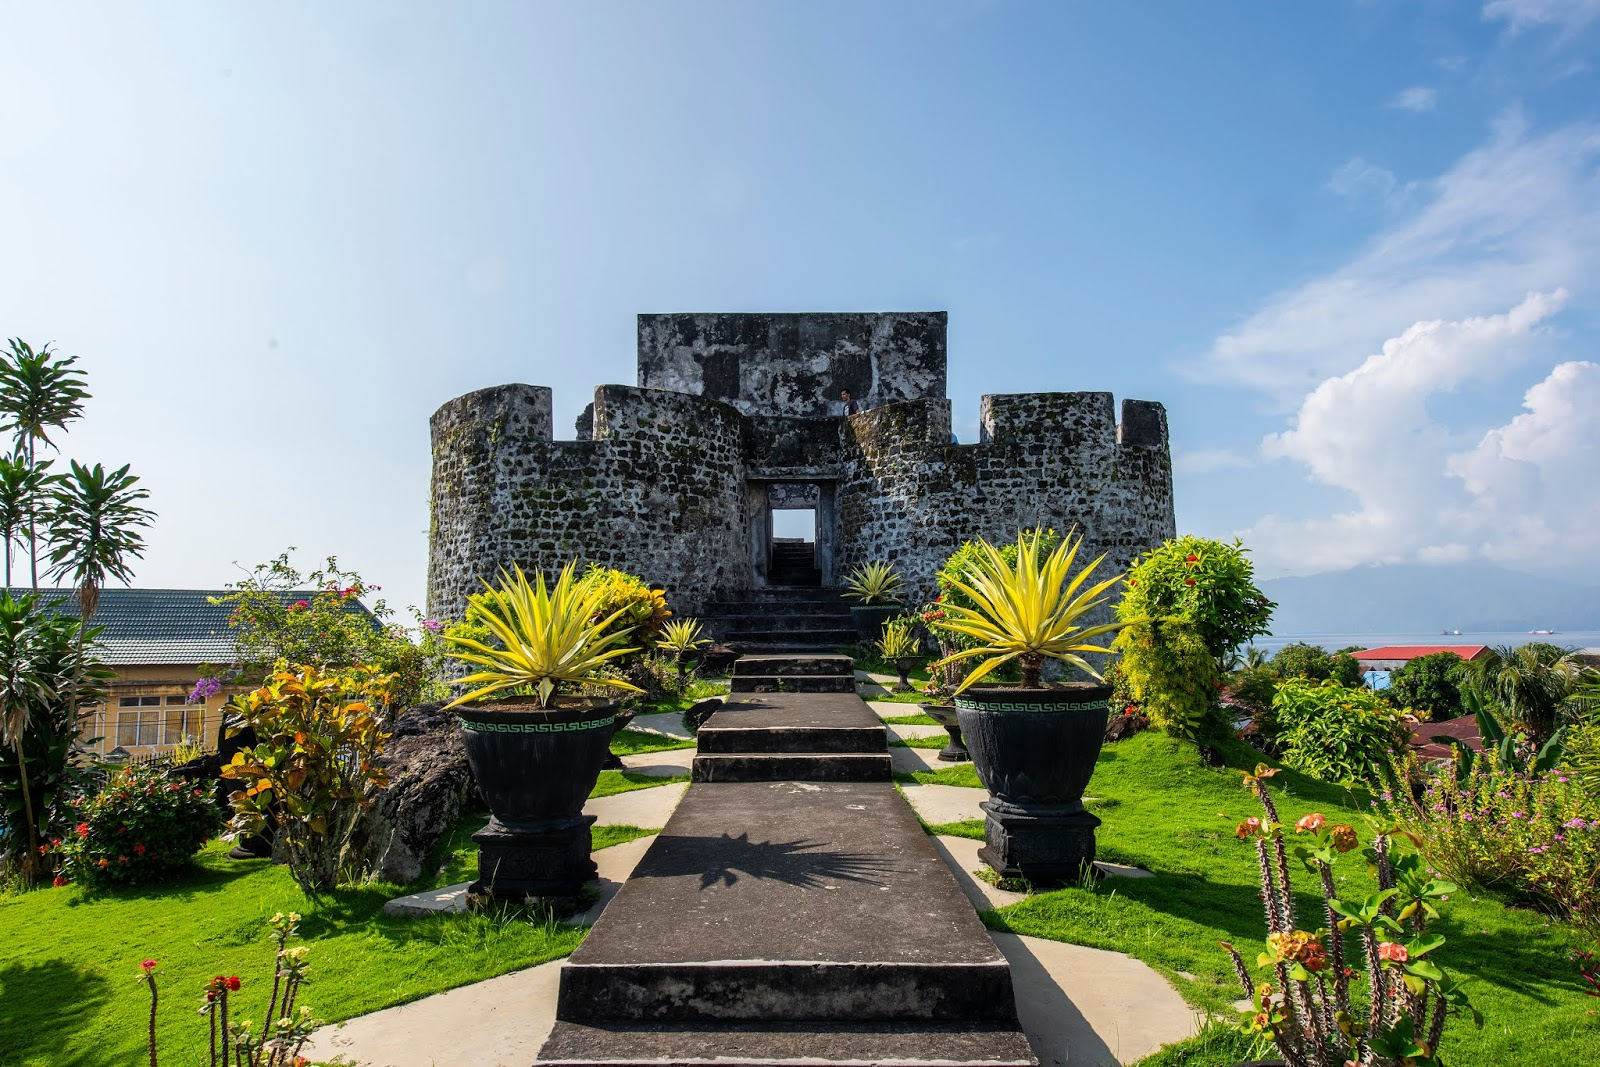 Historical Tourism Sites in Ternate